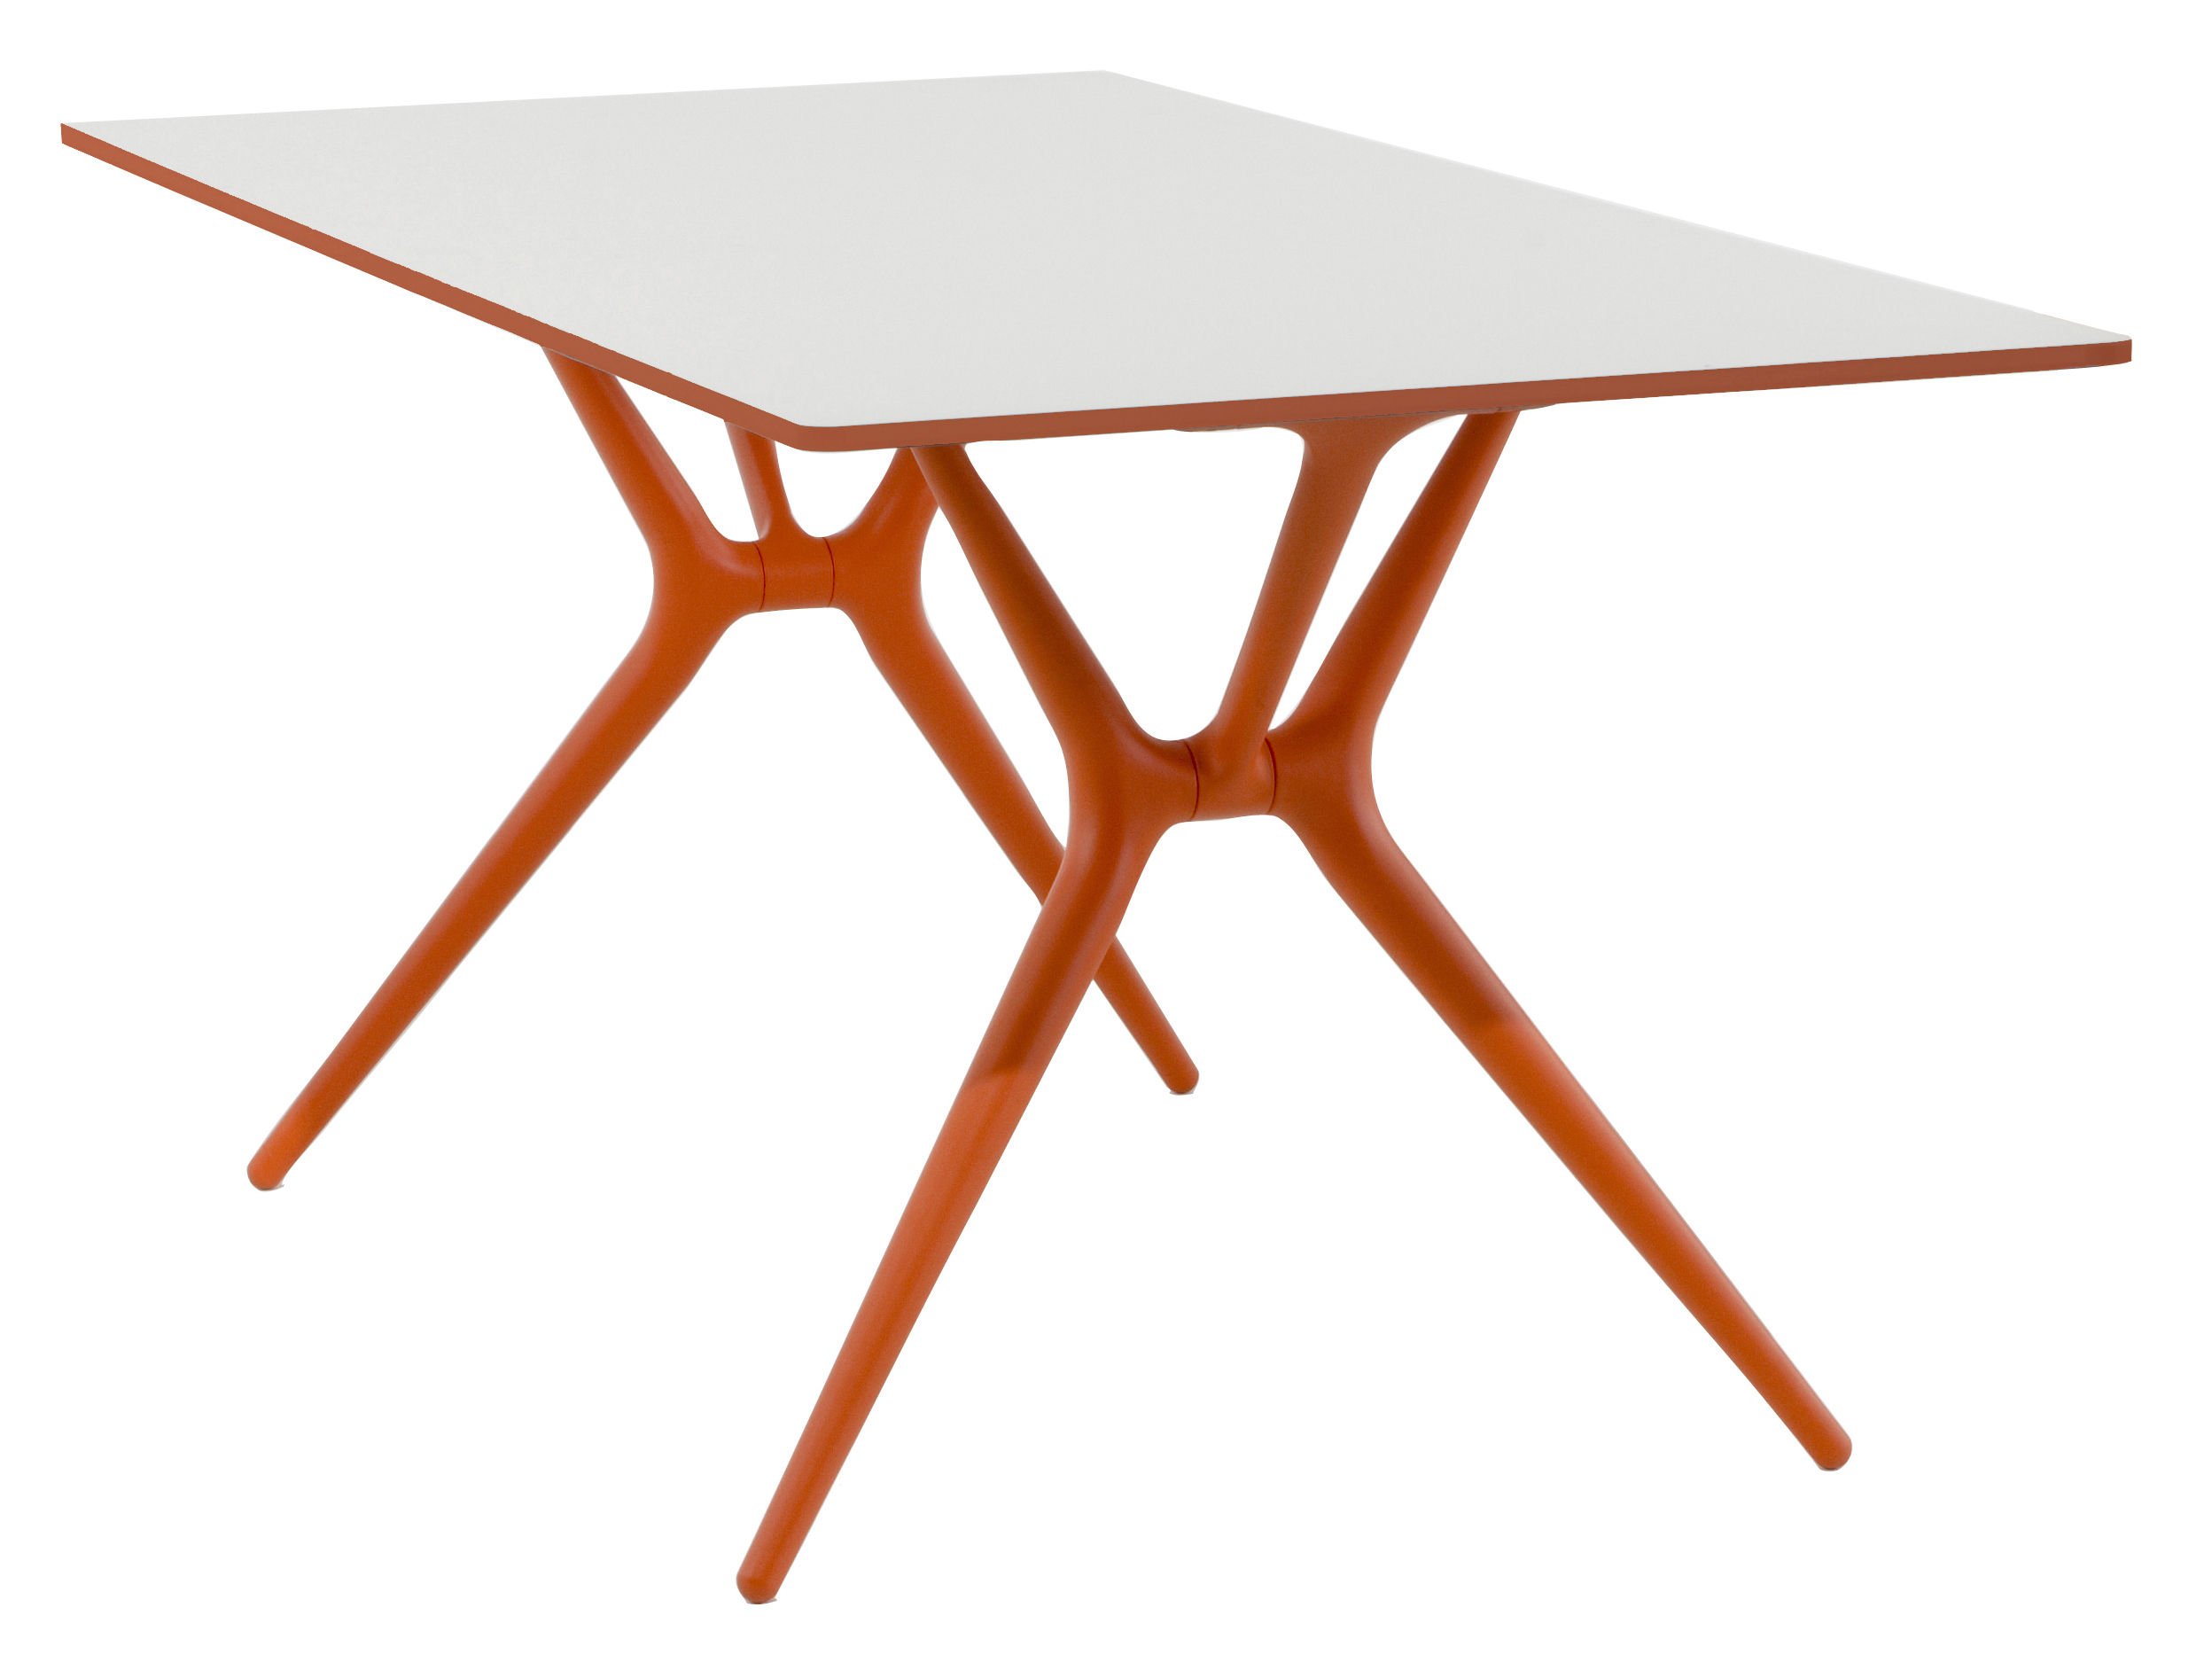 Pied Table Pliant Table Pliante Spoon Bureau 200 X 90 Cm Kartell